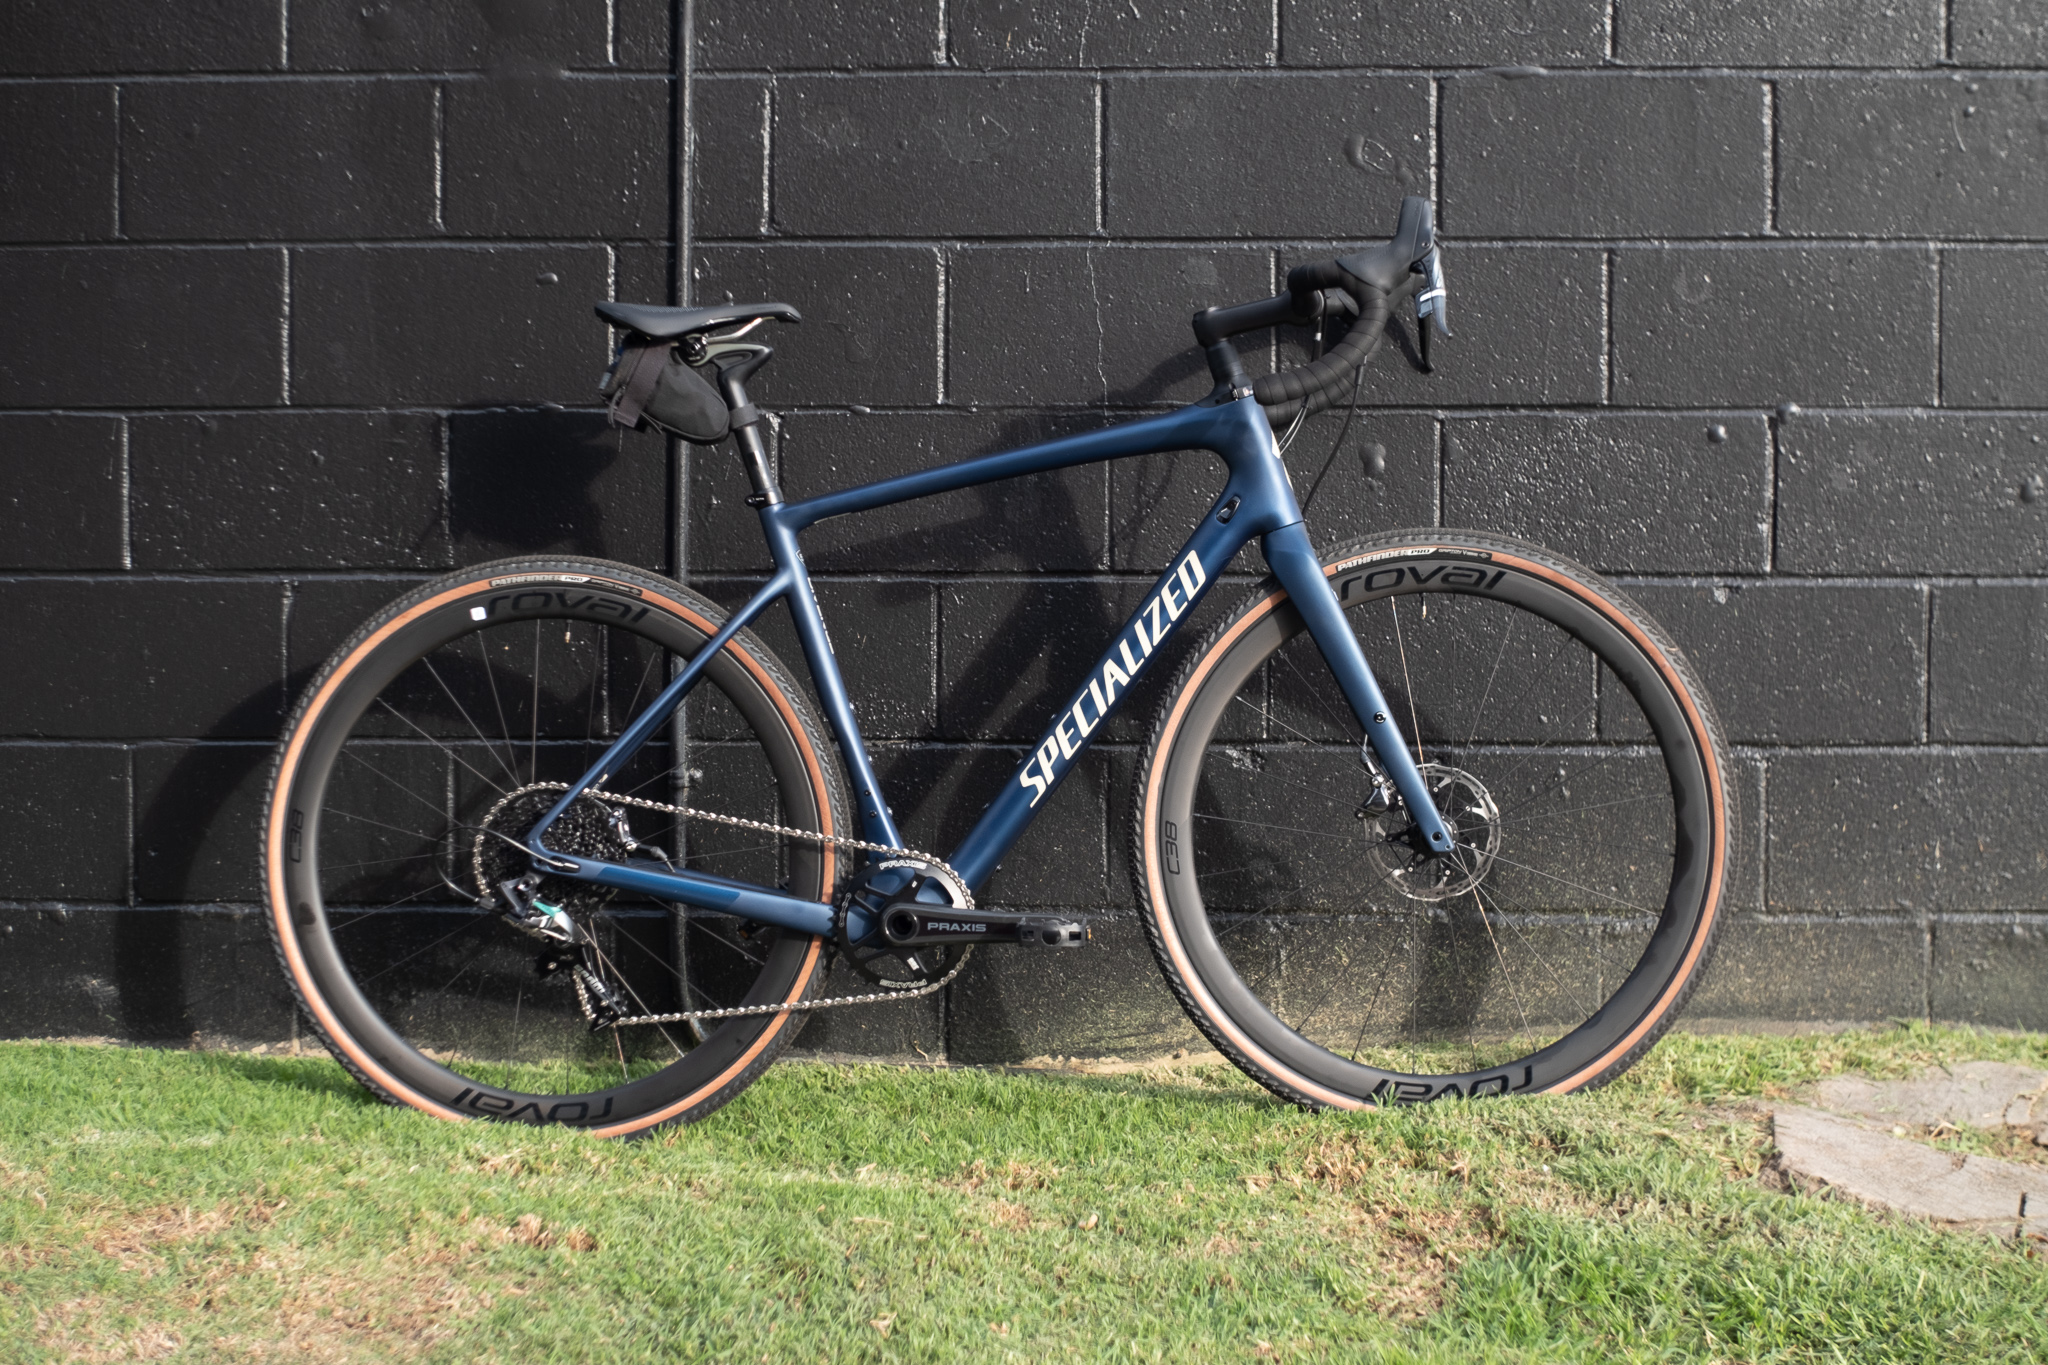 2020 Specialized Diverge Comp X1 side view